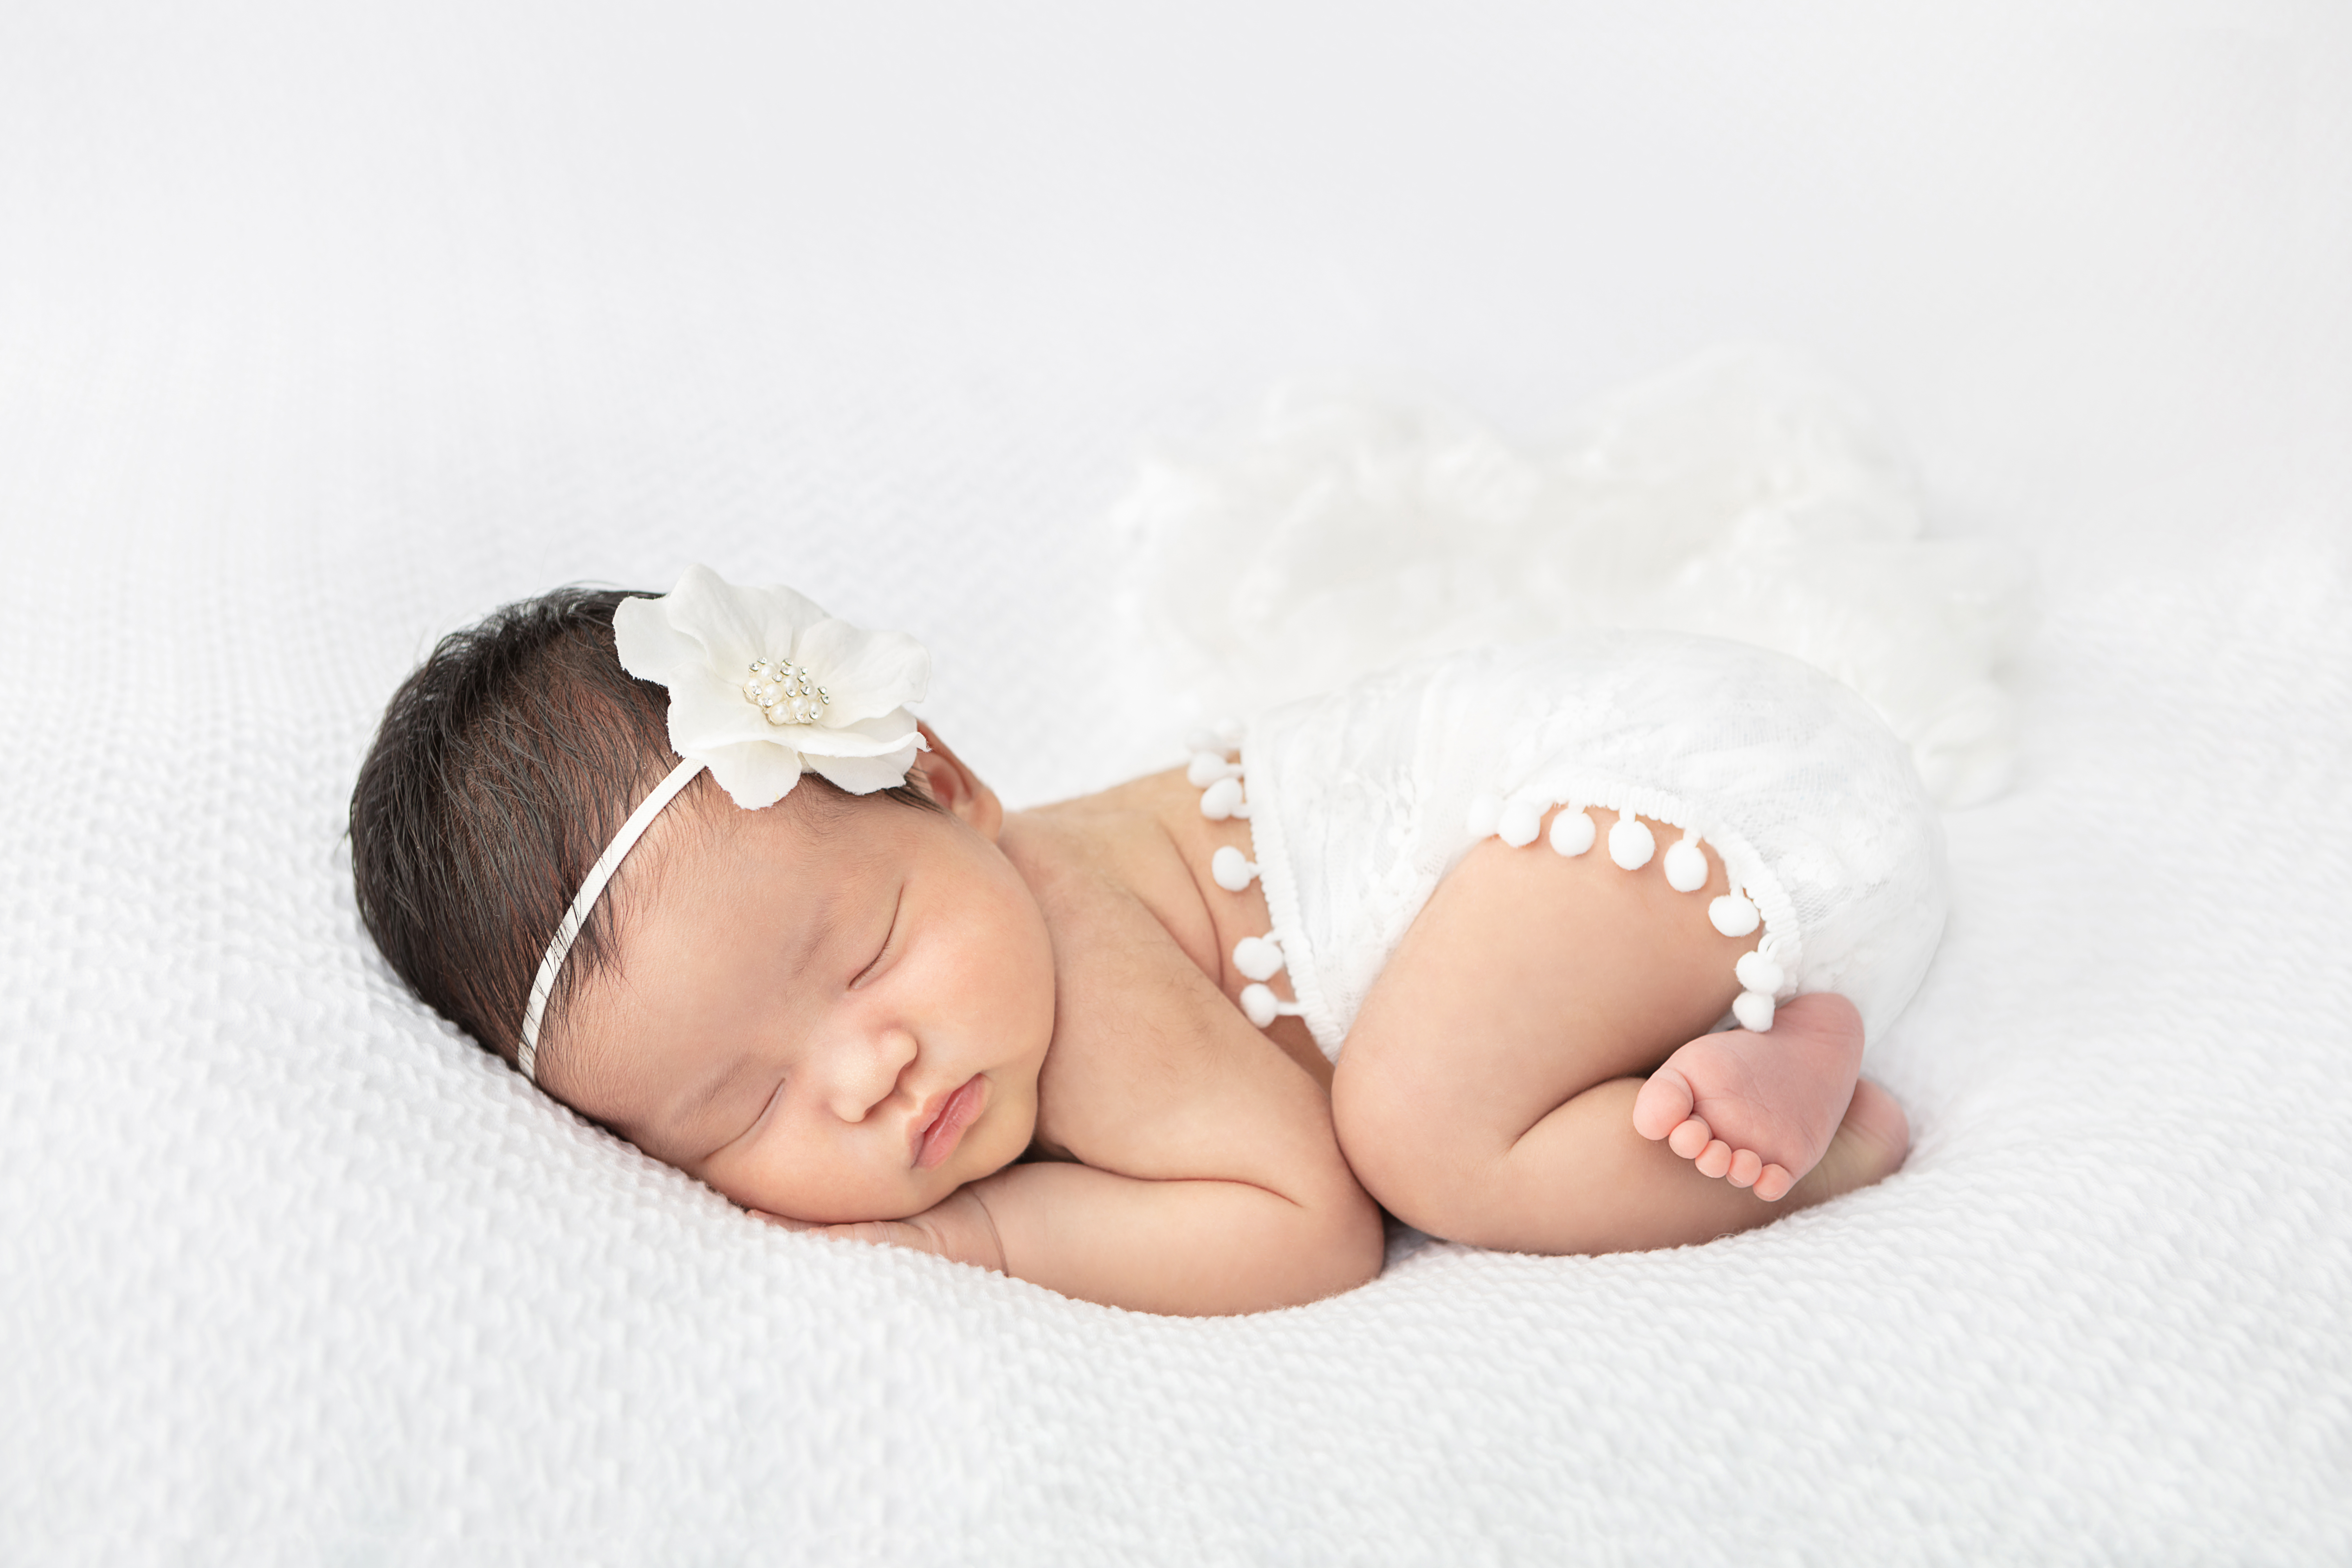 sweet newborn baby girl wrapped in a white swaddle with pom poms and lying on a white textured blanket